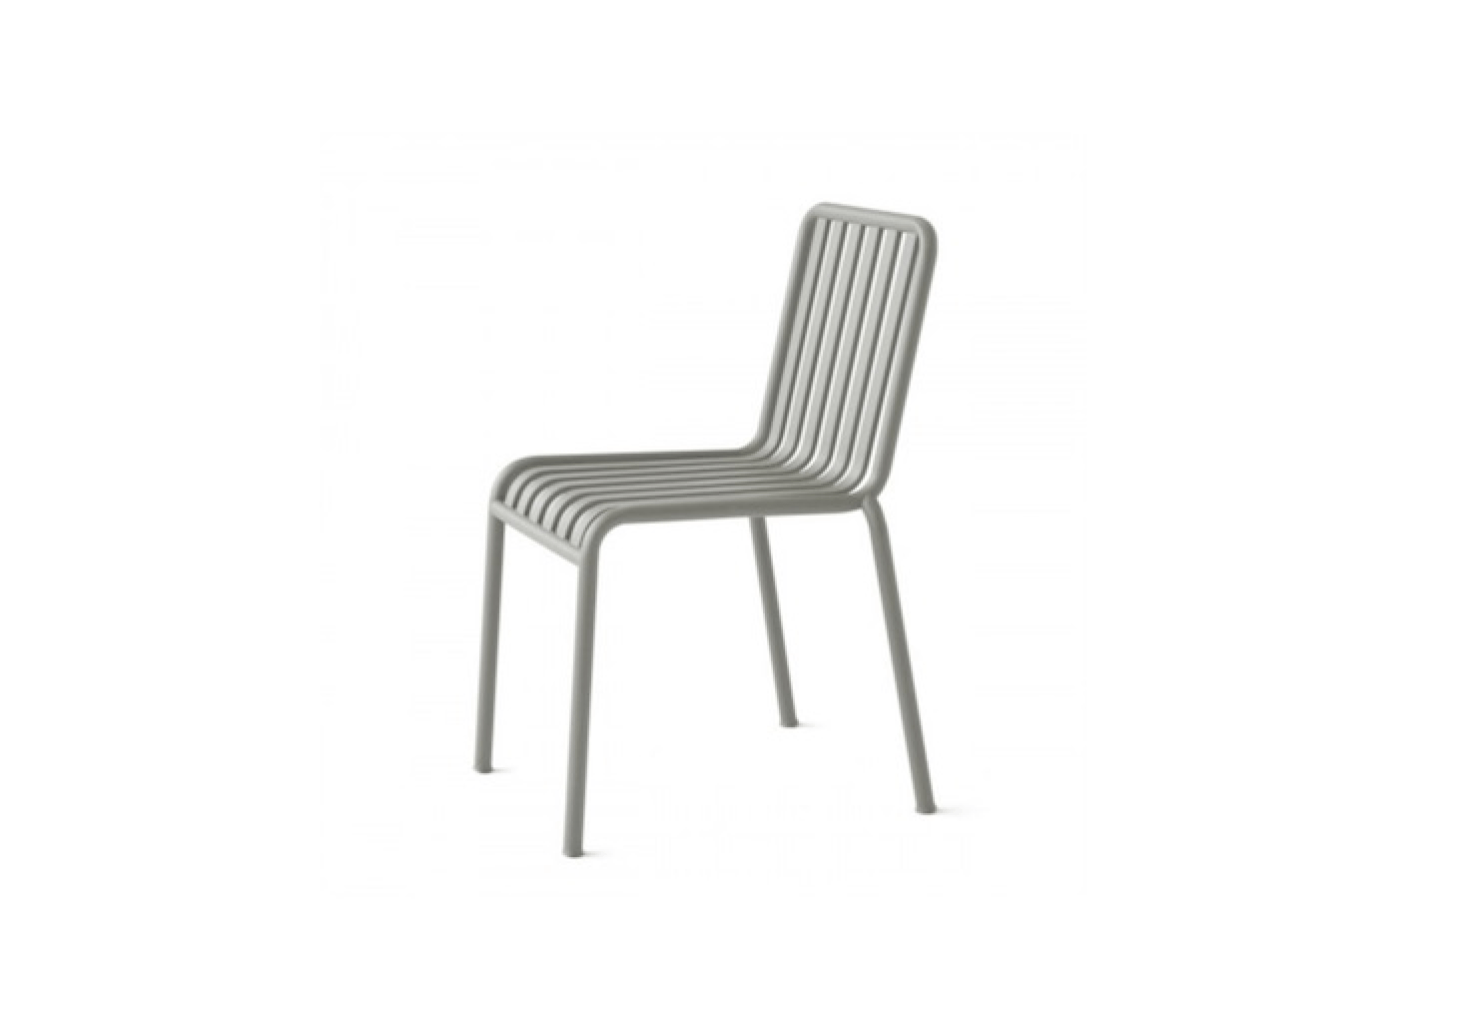 Ordinaire A Galvanized Powder Coated Steel Hay Palissade Chair In An Anthracite Color  Is £189